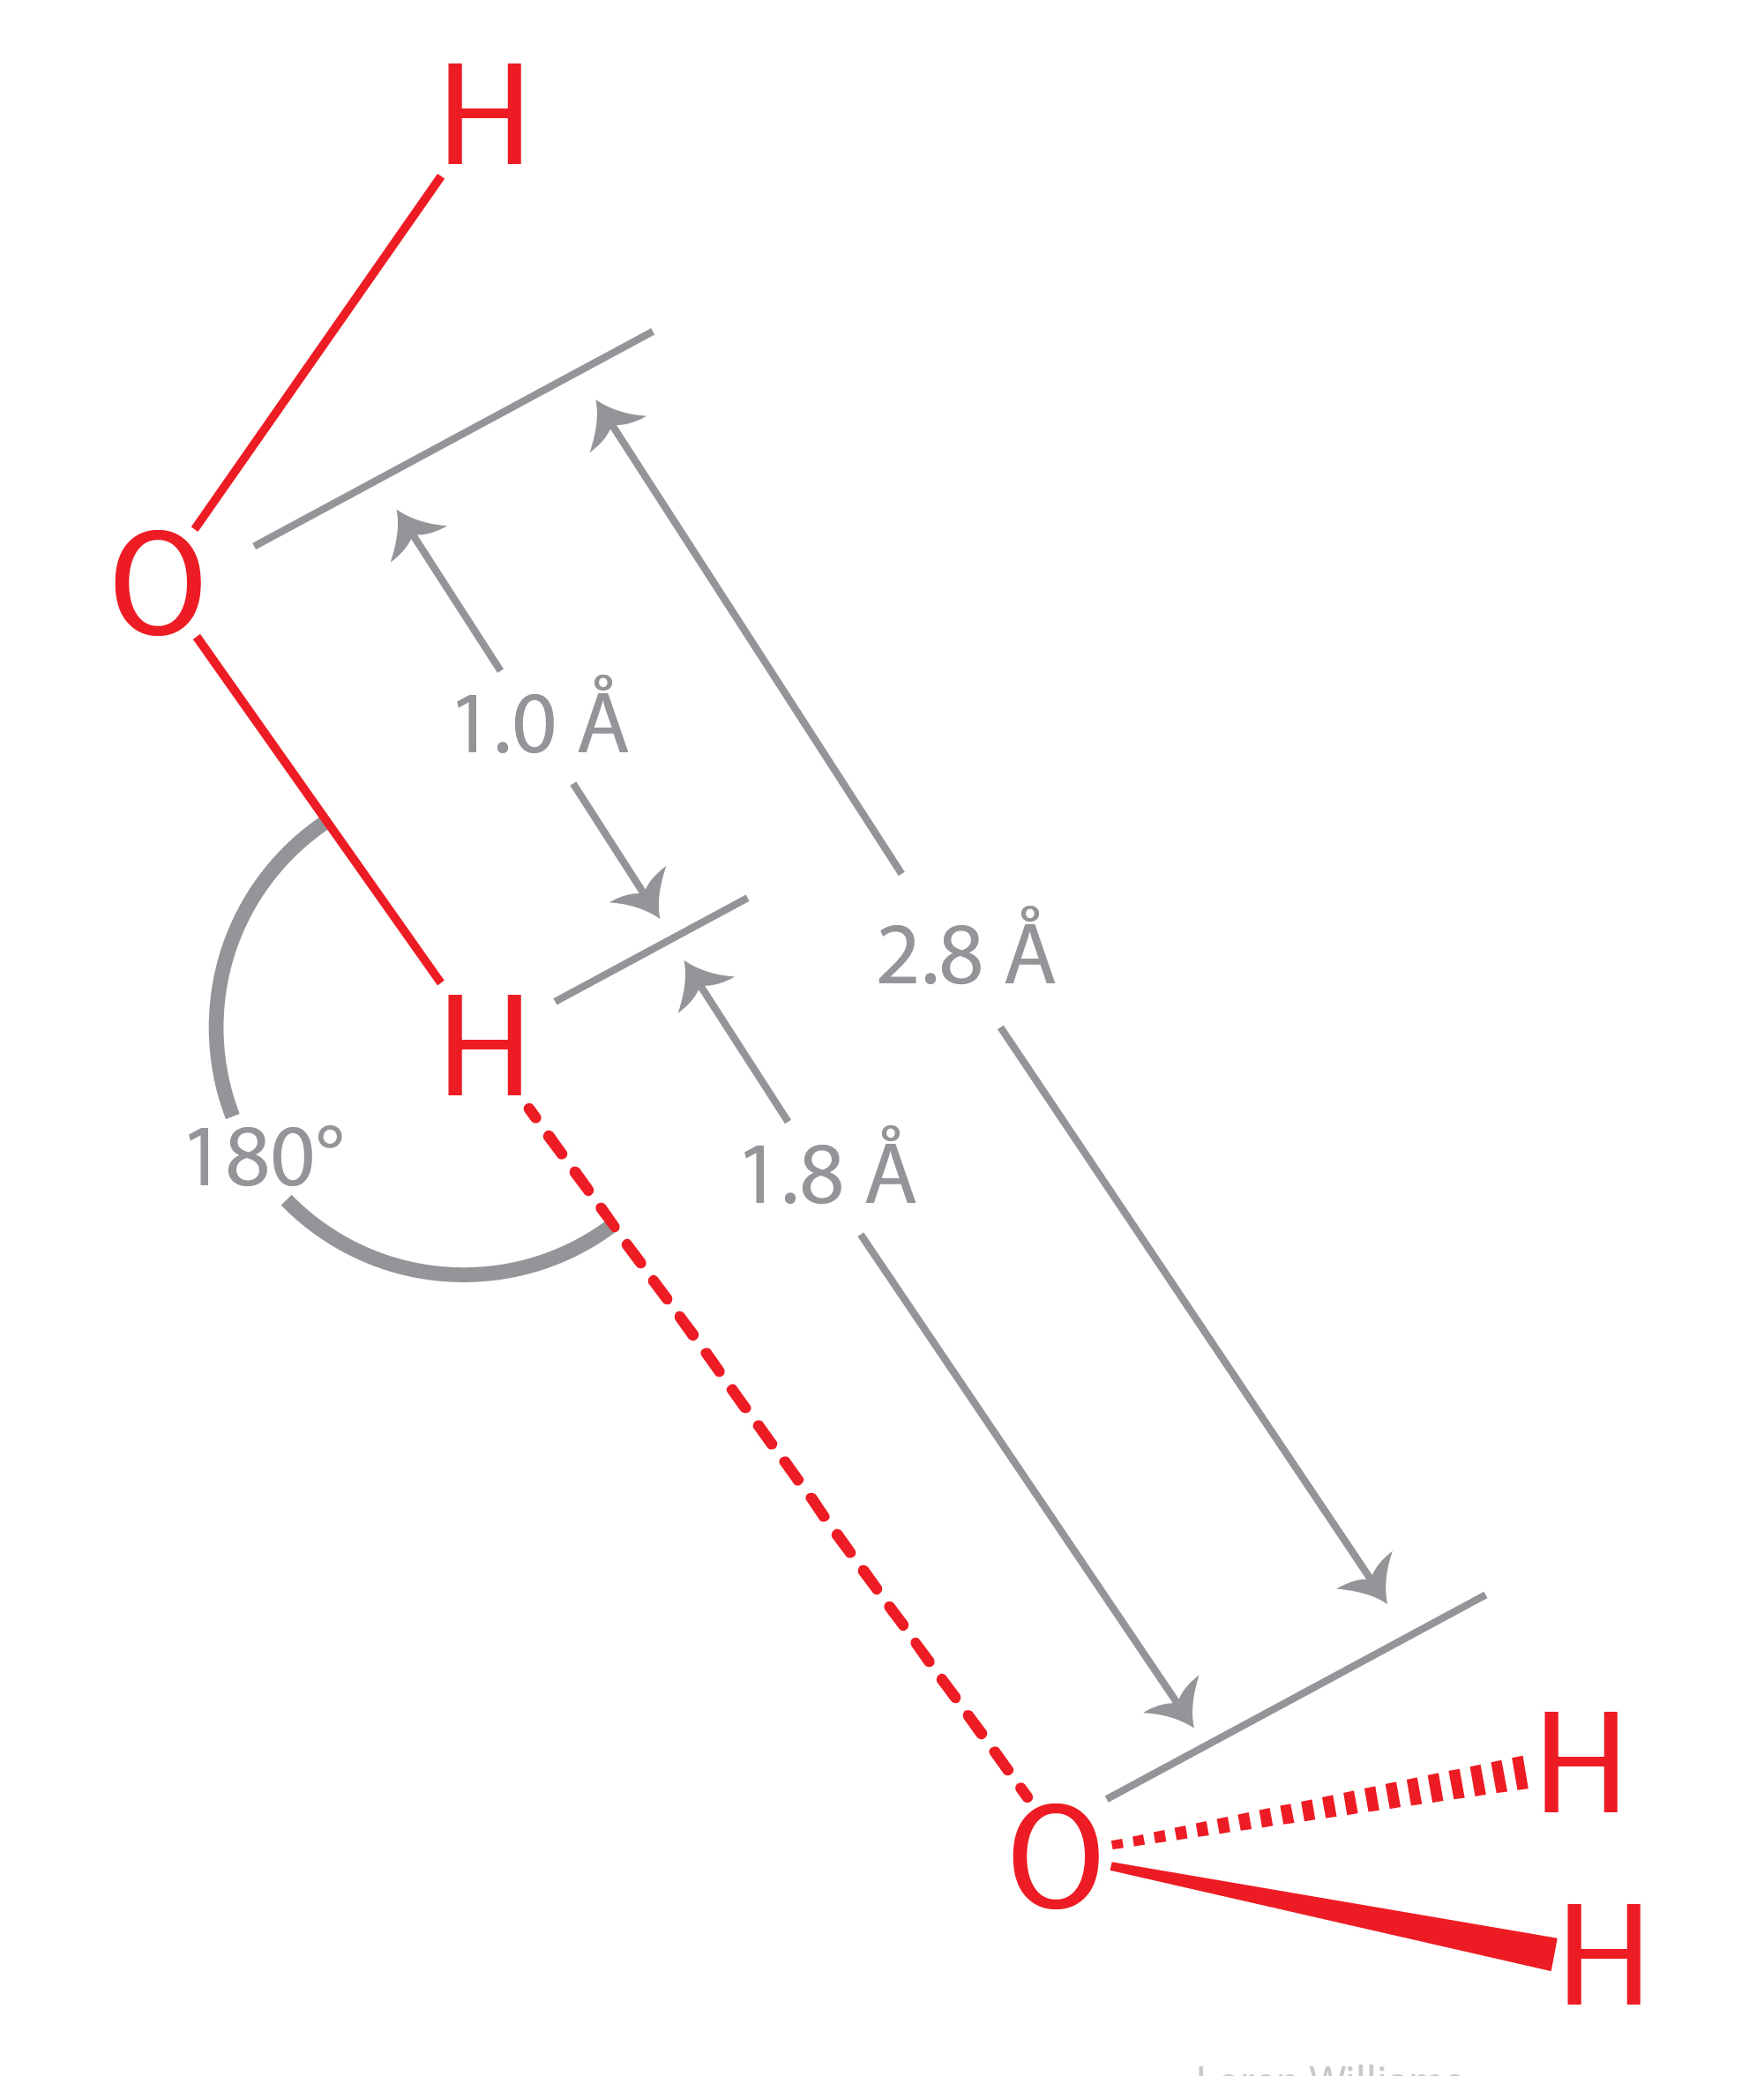 labeled diagram of hydrogen bonding